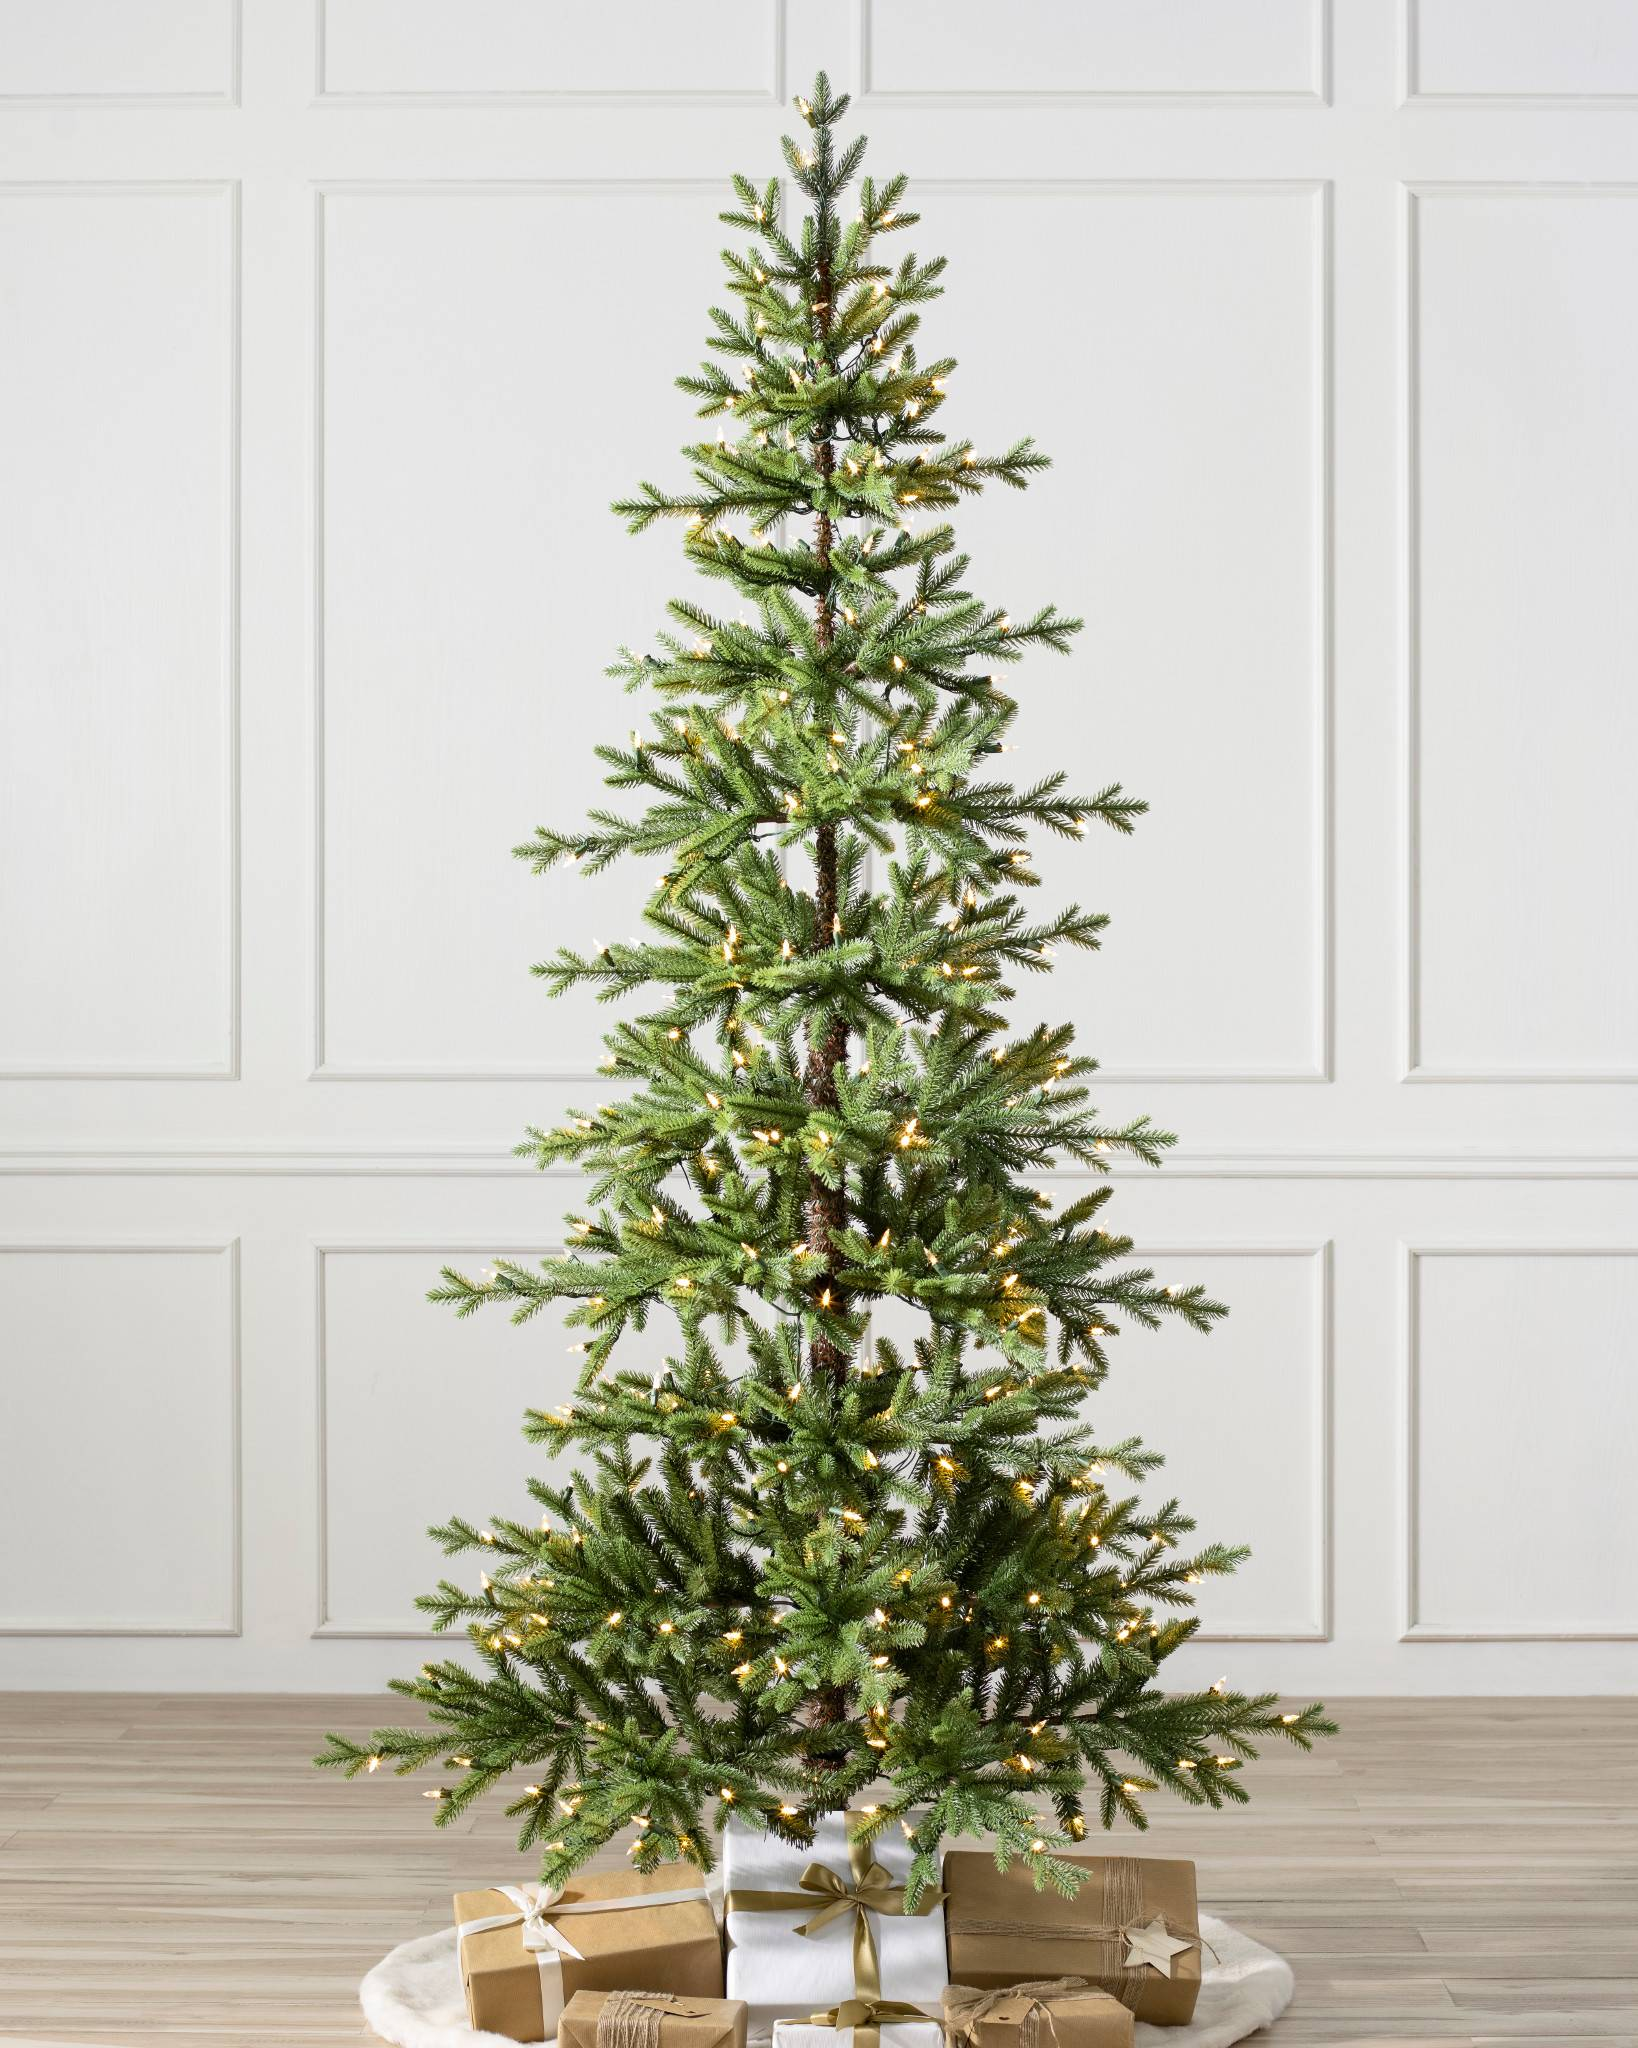 Artificial Christmas Trees Uk 6ft - Image Home Garden and Tree Rtecx.Com